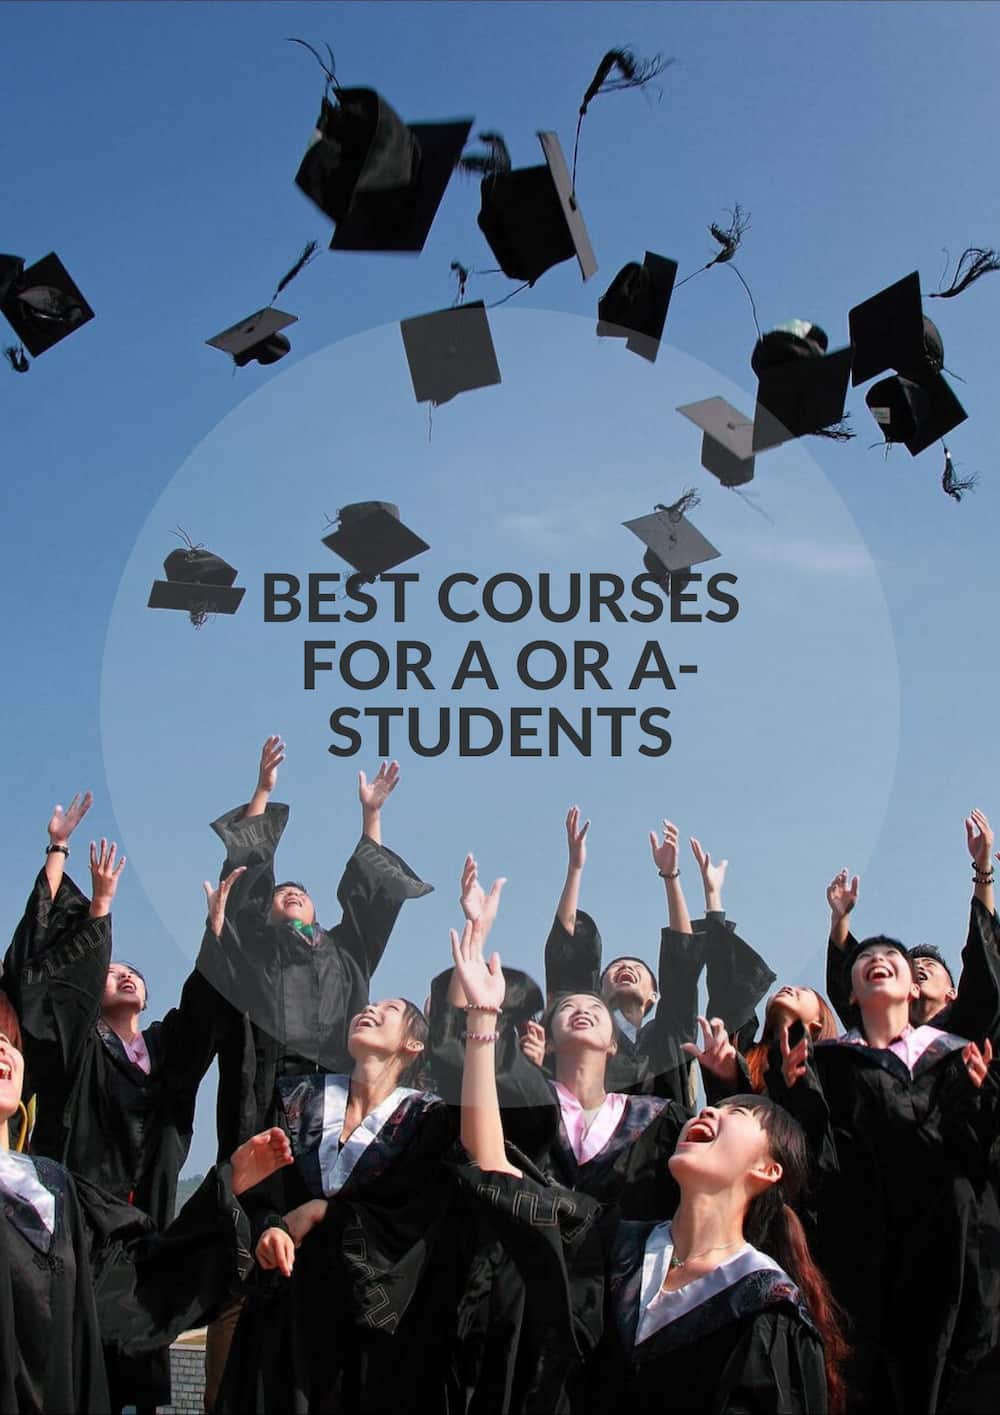 Courses for A or A- students